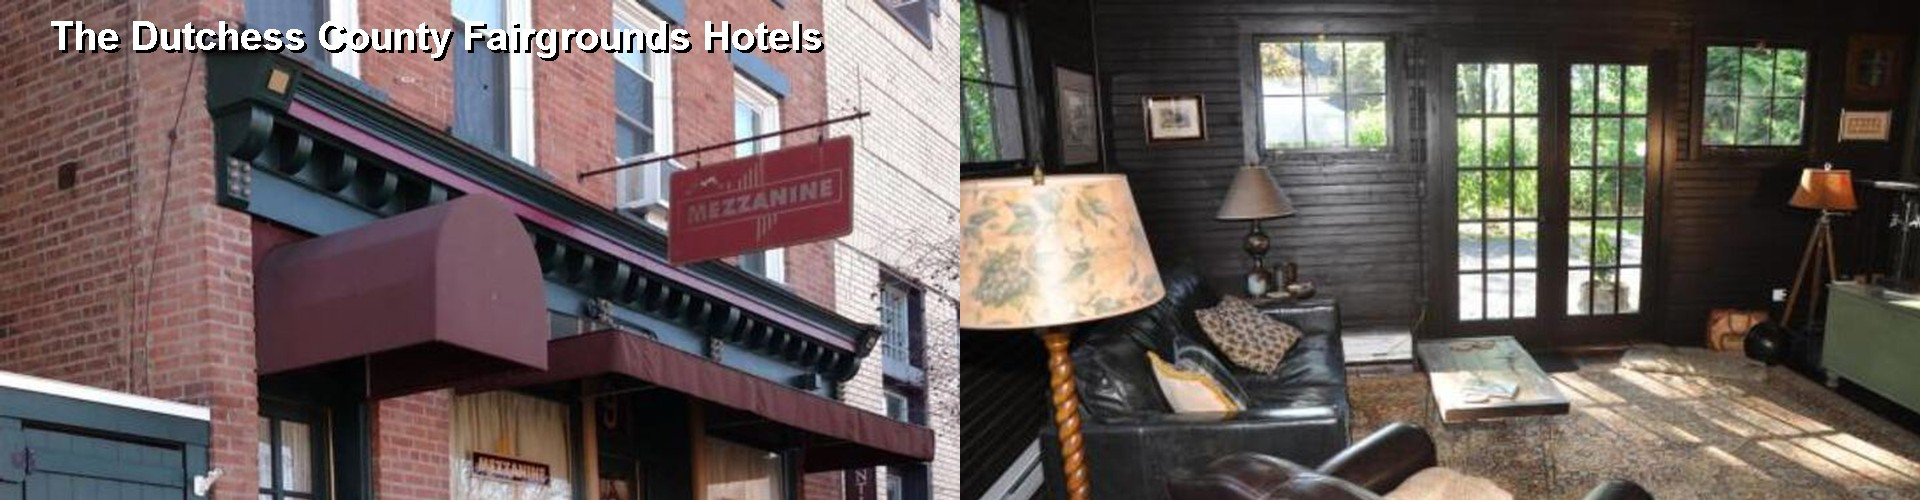 5 Best Hotels near The Dutchess County Fairgrounds